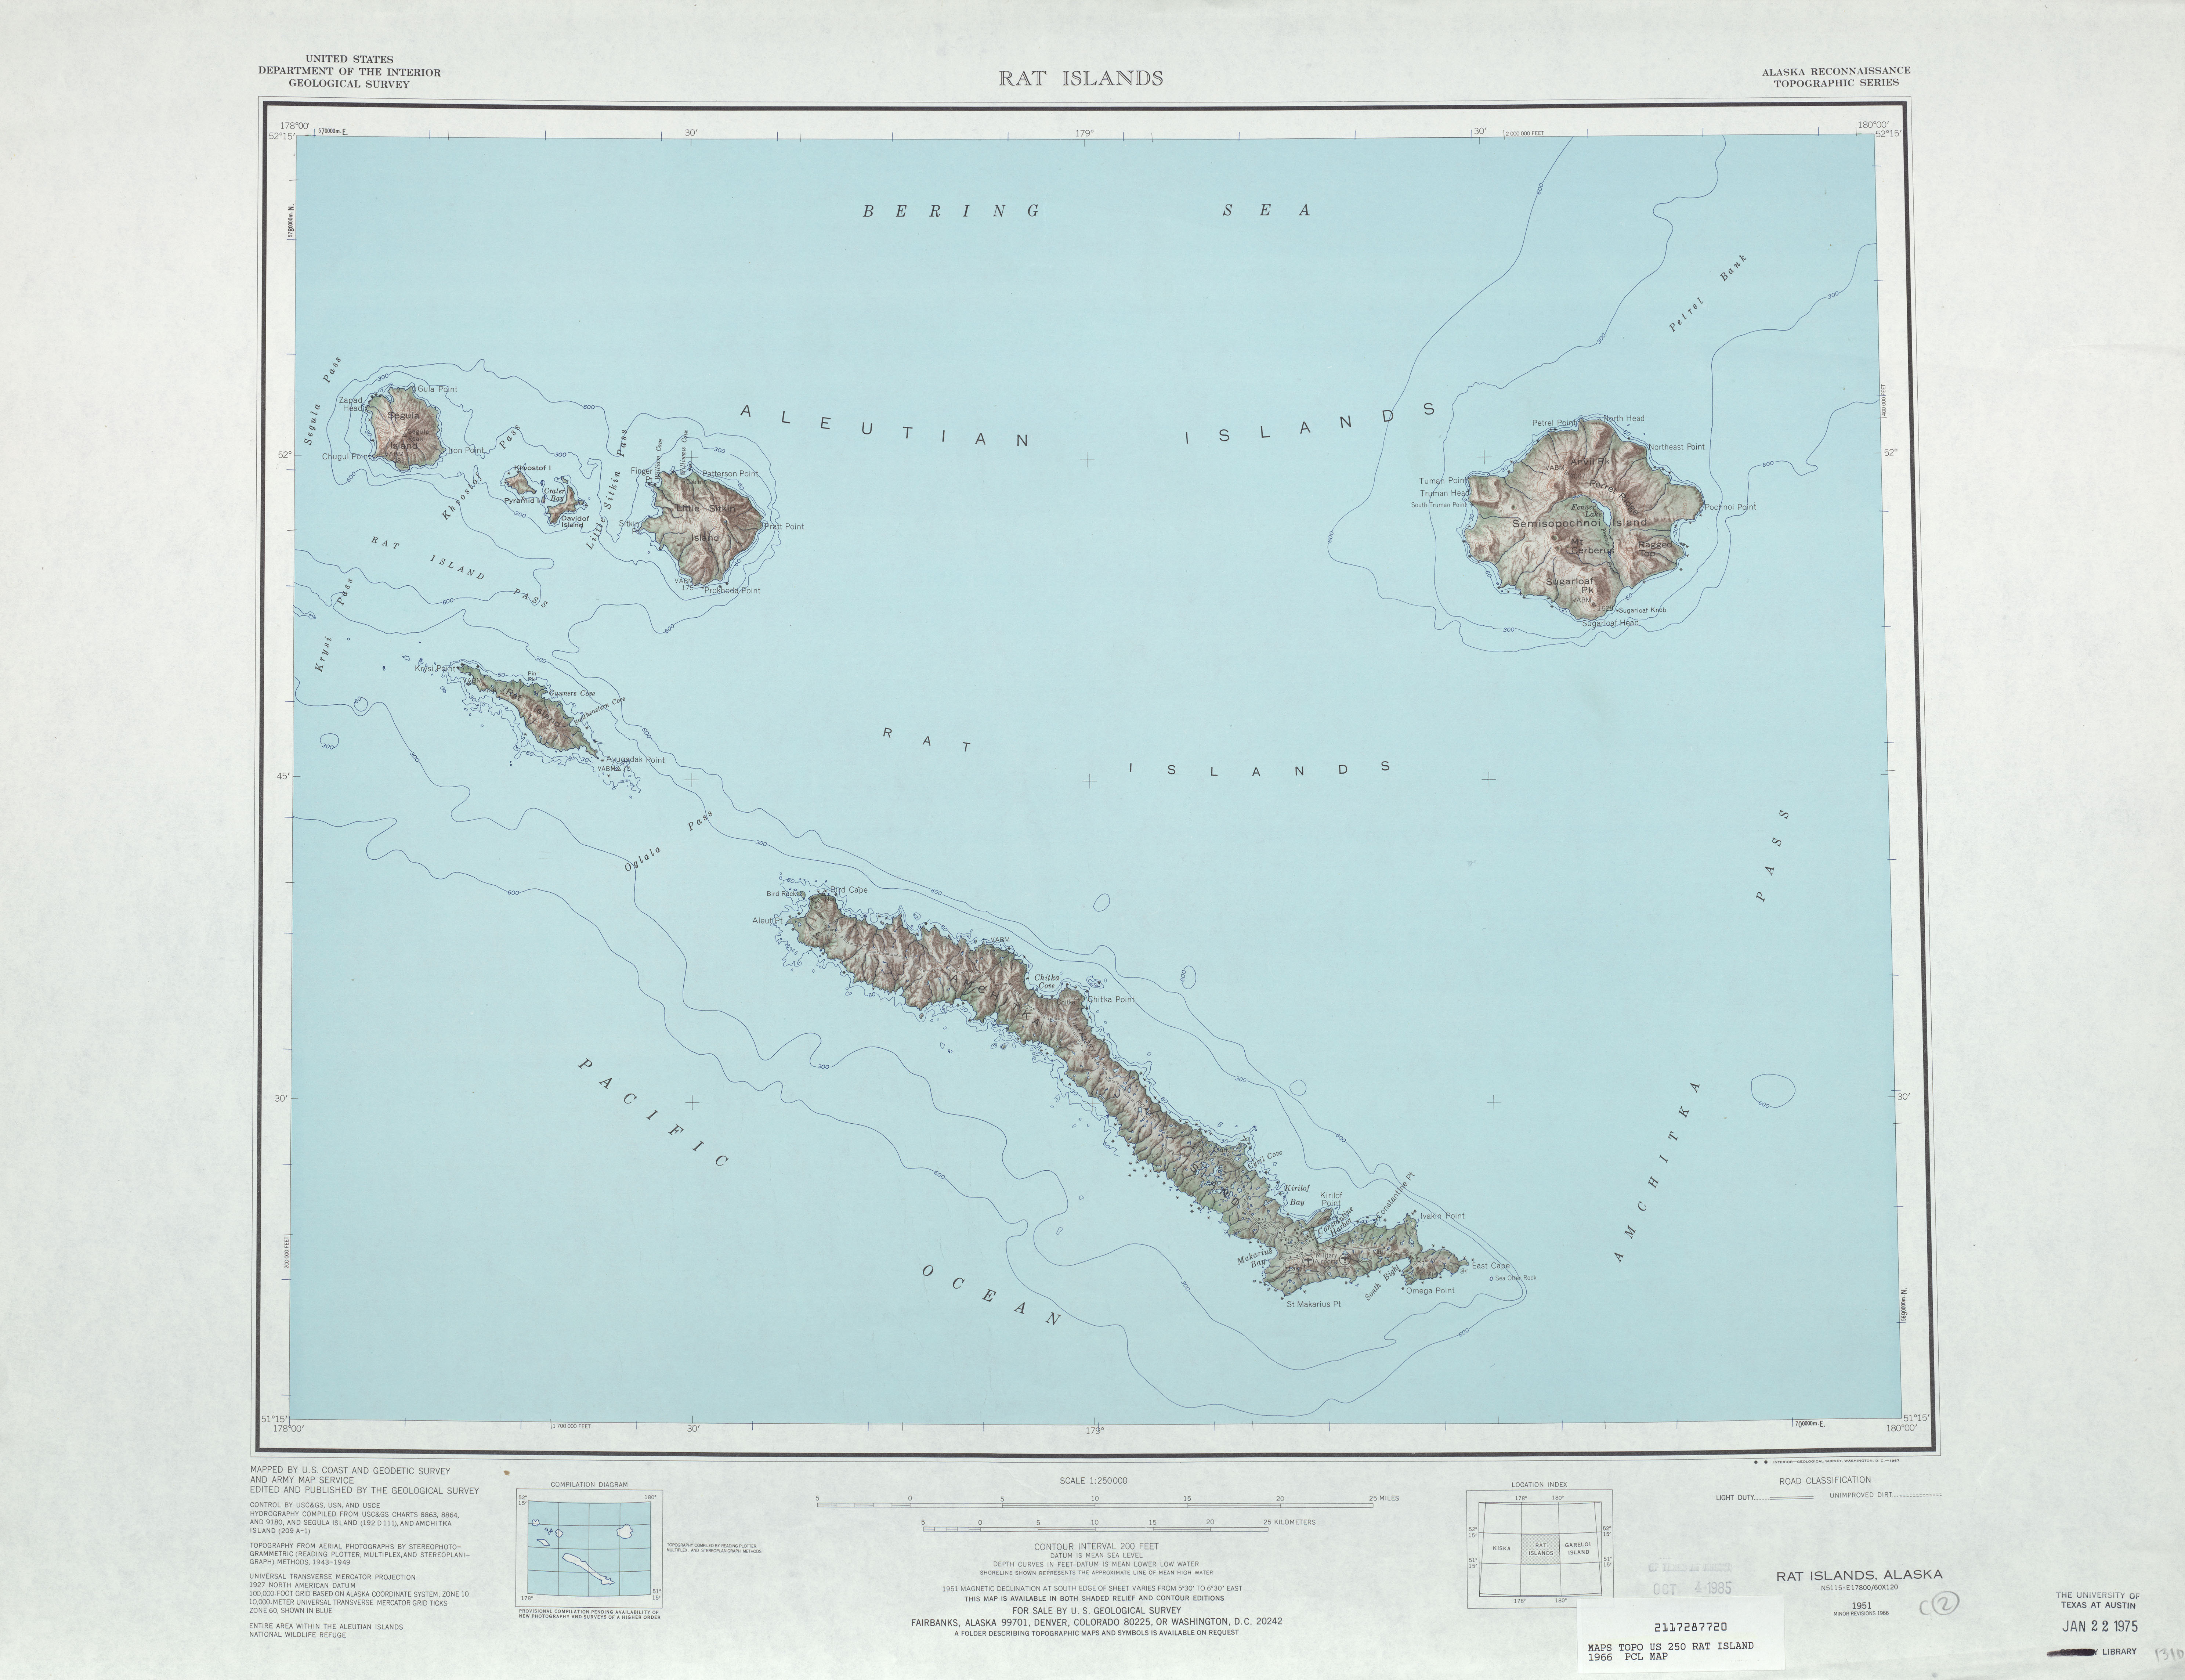 Rat Islands Topographic Map Sheet, United States 1966